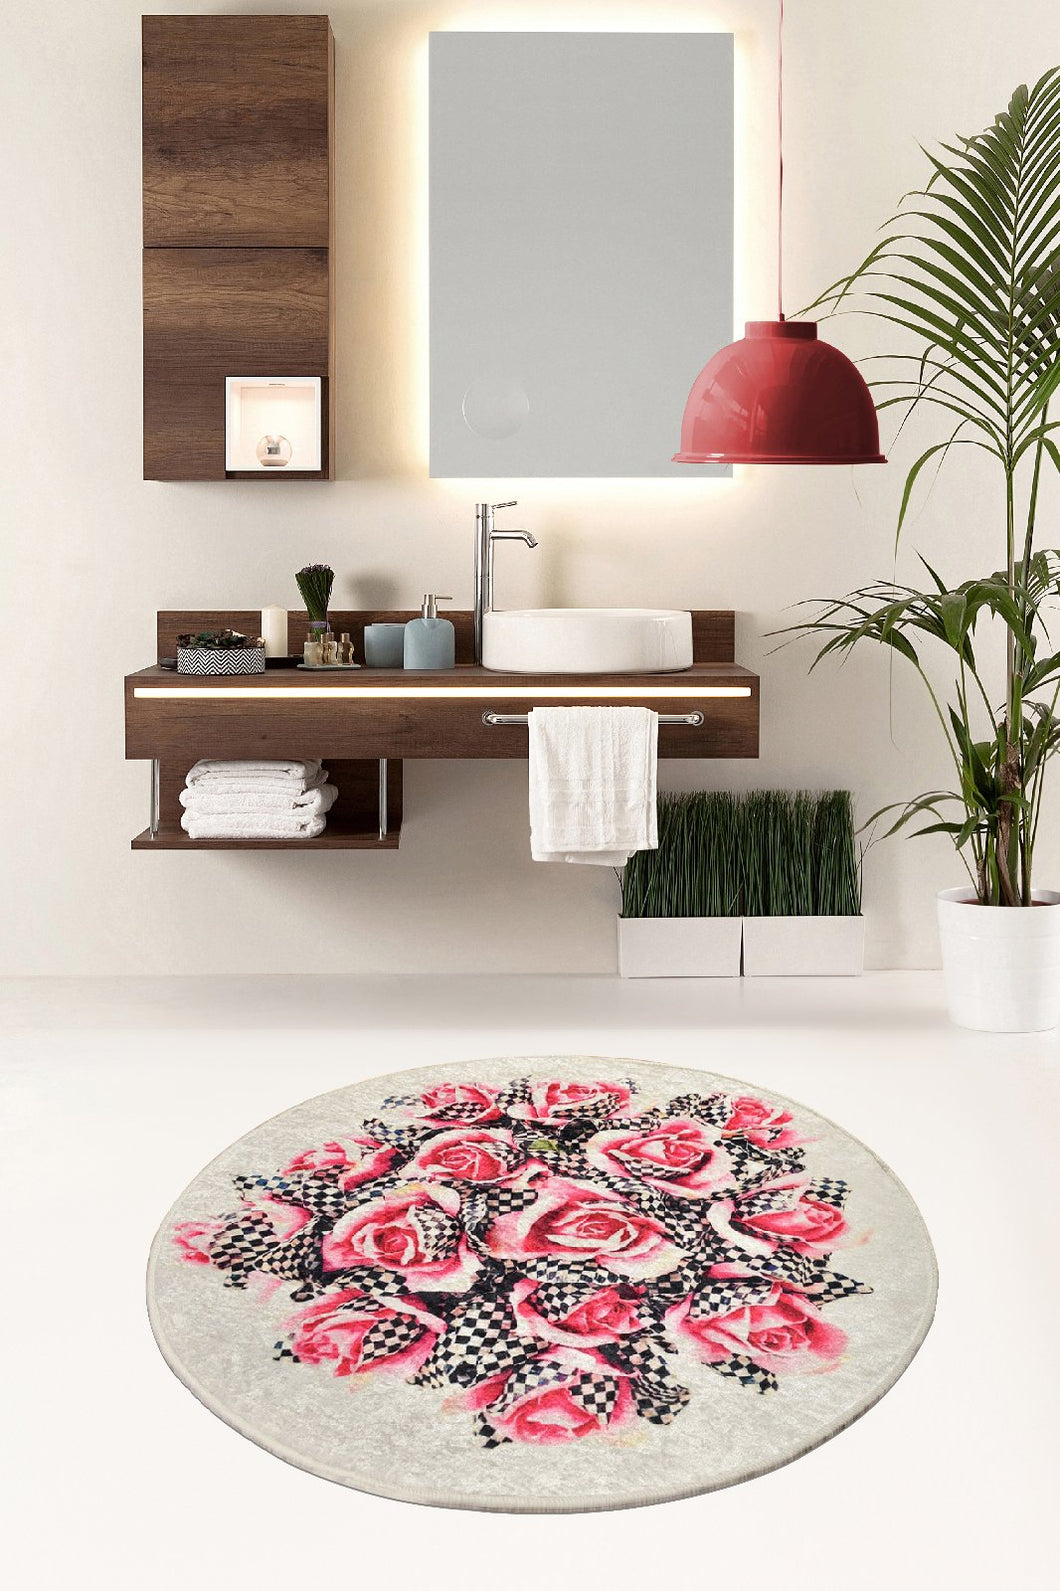 Antdecor Magic Roses Round Bath Rug Area Rug Round Rug 40